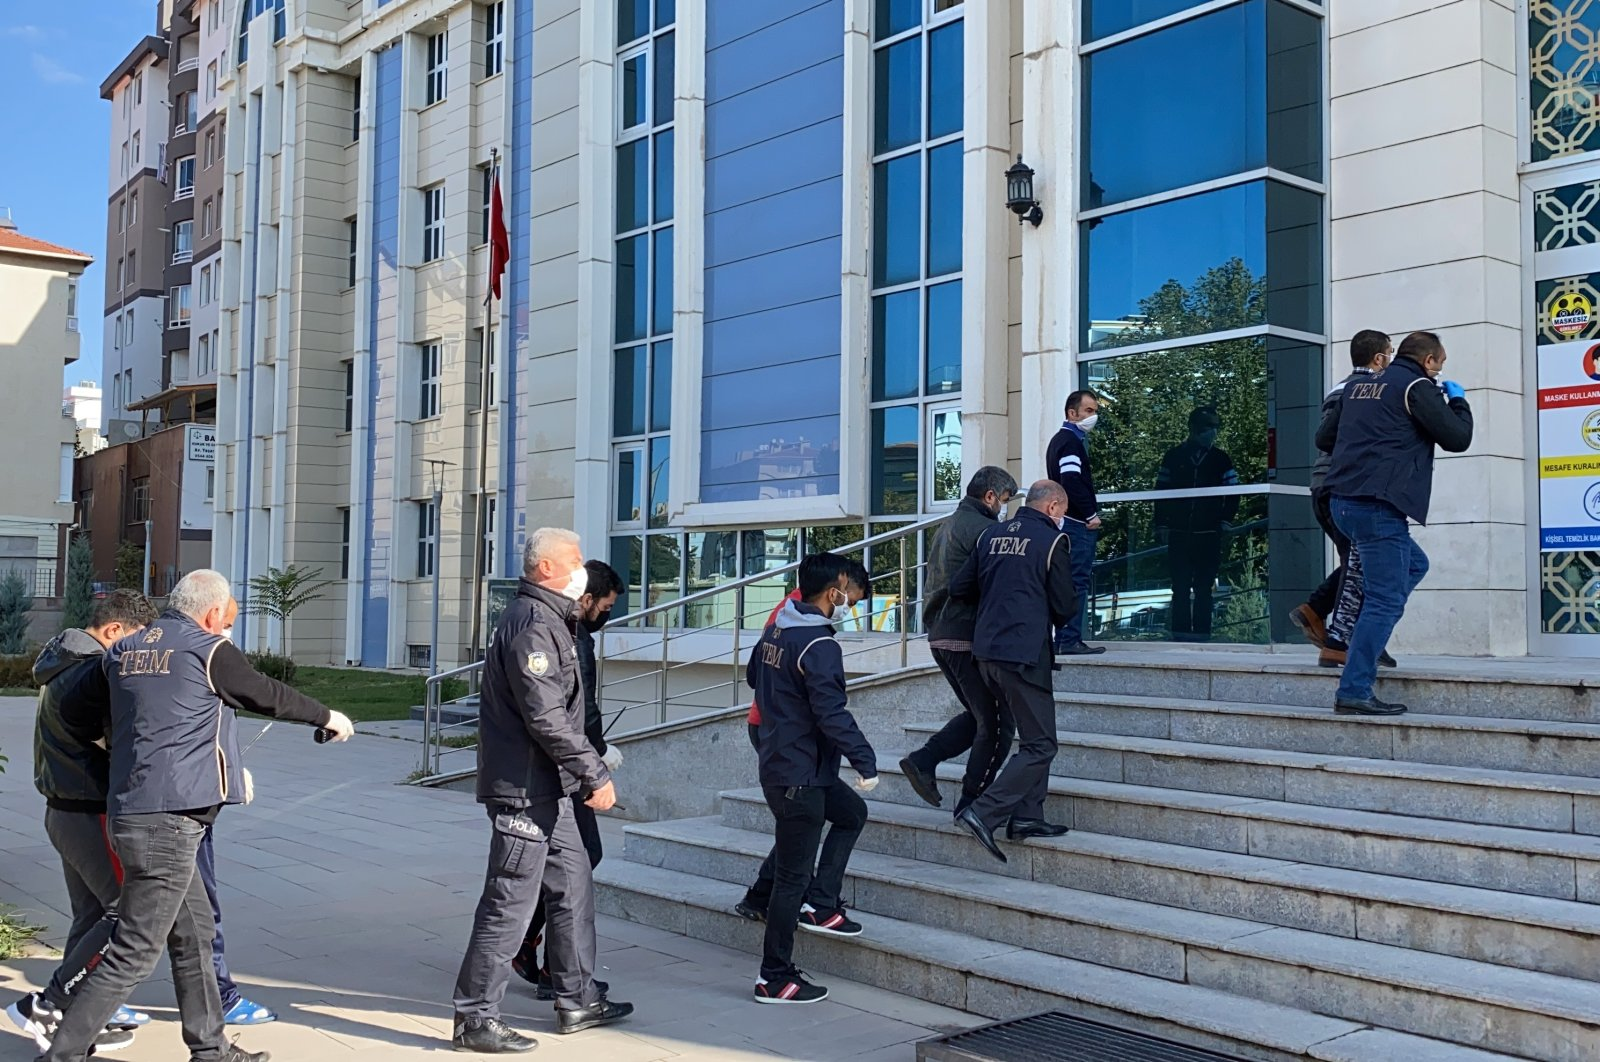 Daesh suspects nabbed in anti-terror operations are brought to the court by security forces in the Central Anatolian province of Kırşehir, Turkey, Nov. 2, 2020. (AA Photo)